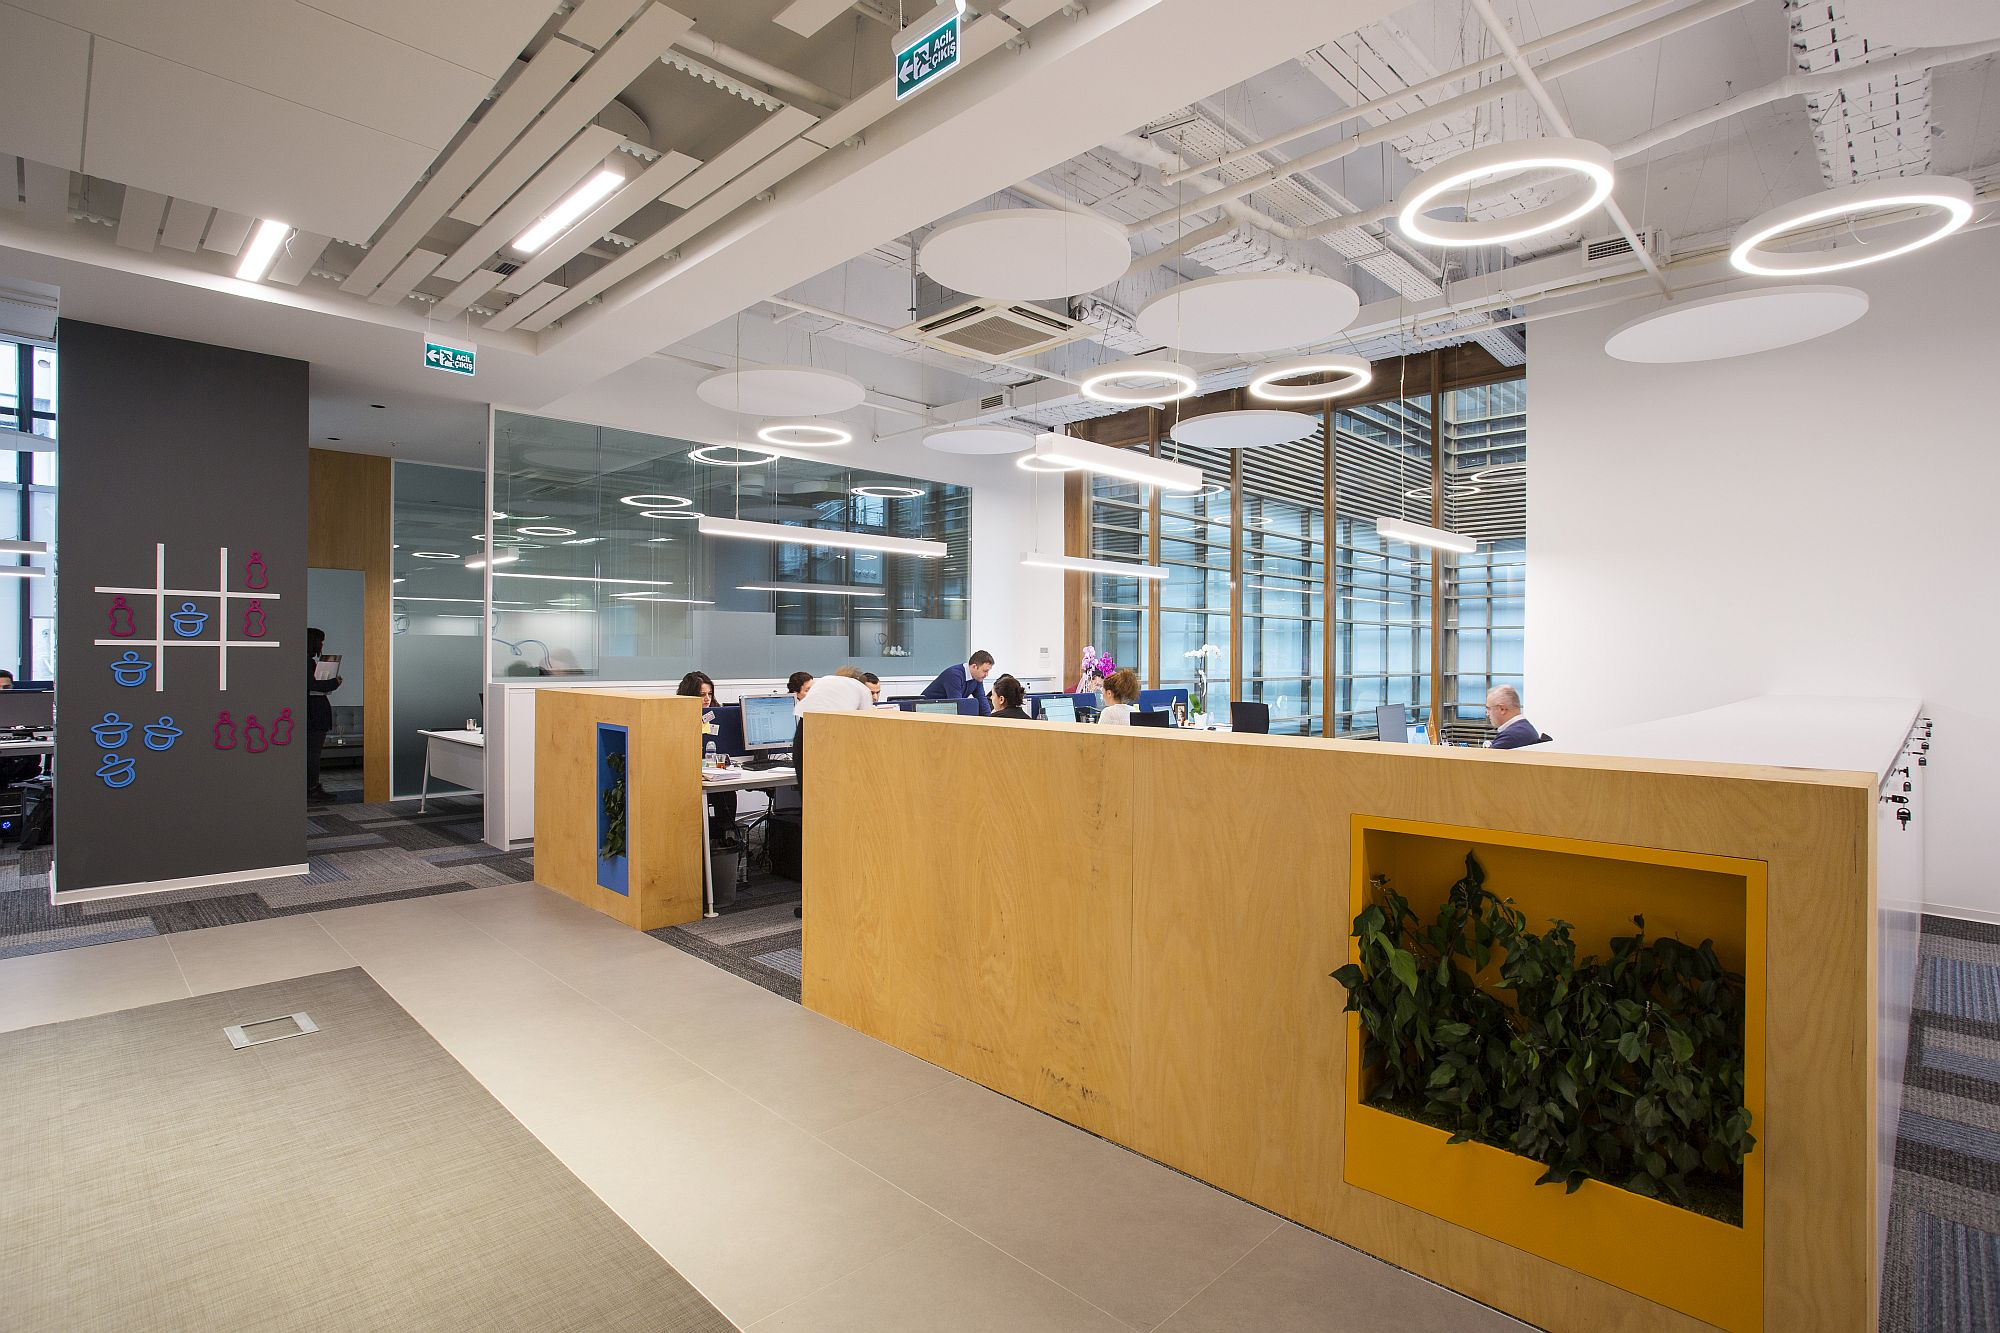 Wooden partitions with niches for indoor plants bring warmth to the contemporary office